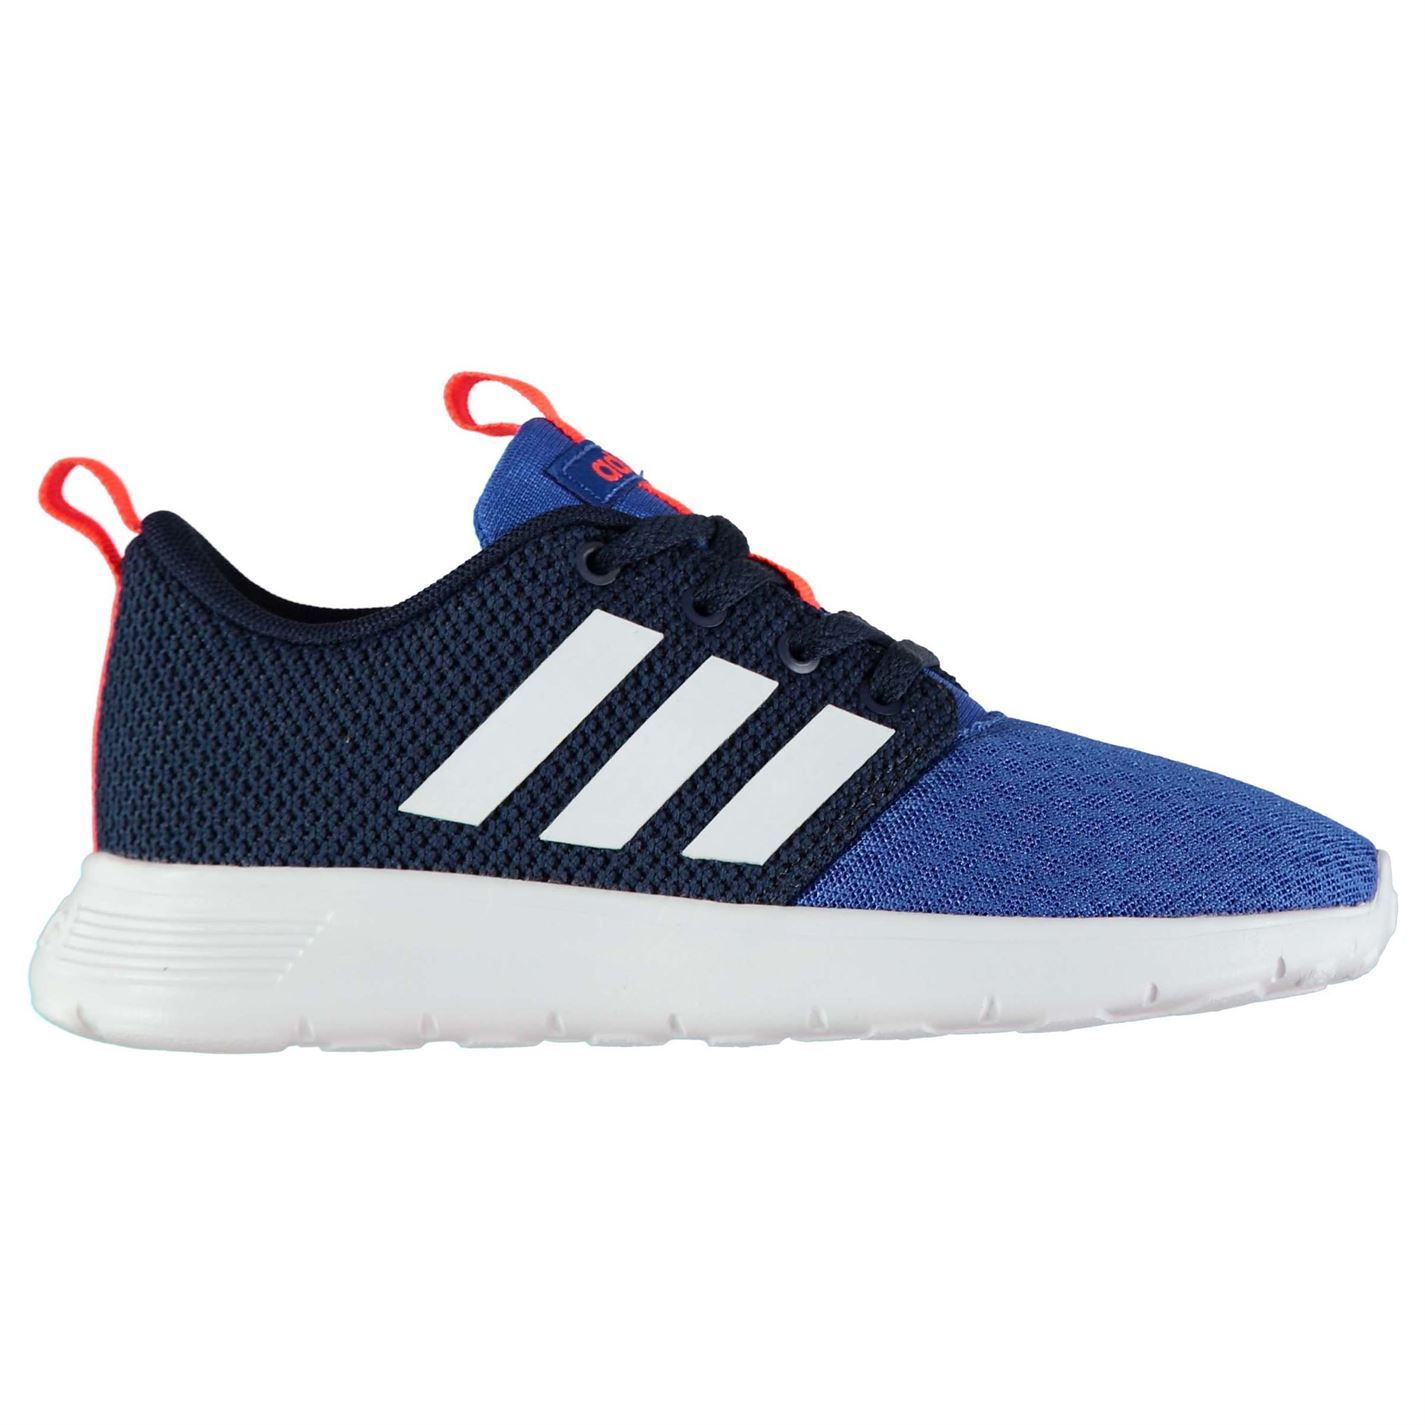 Adidas For Boys No Shoe Lace